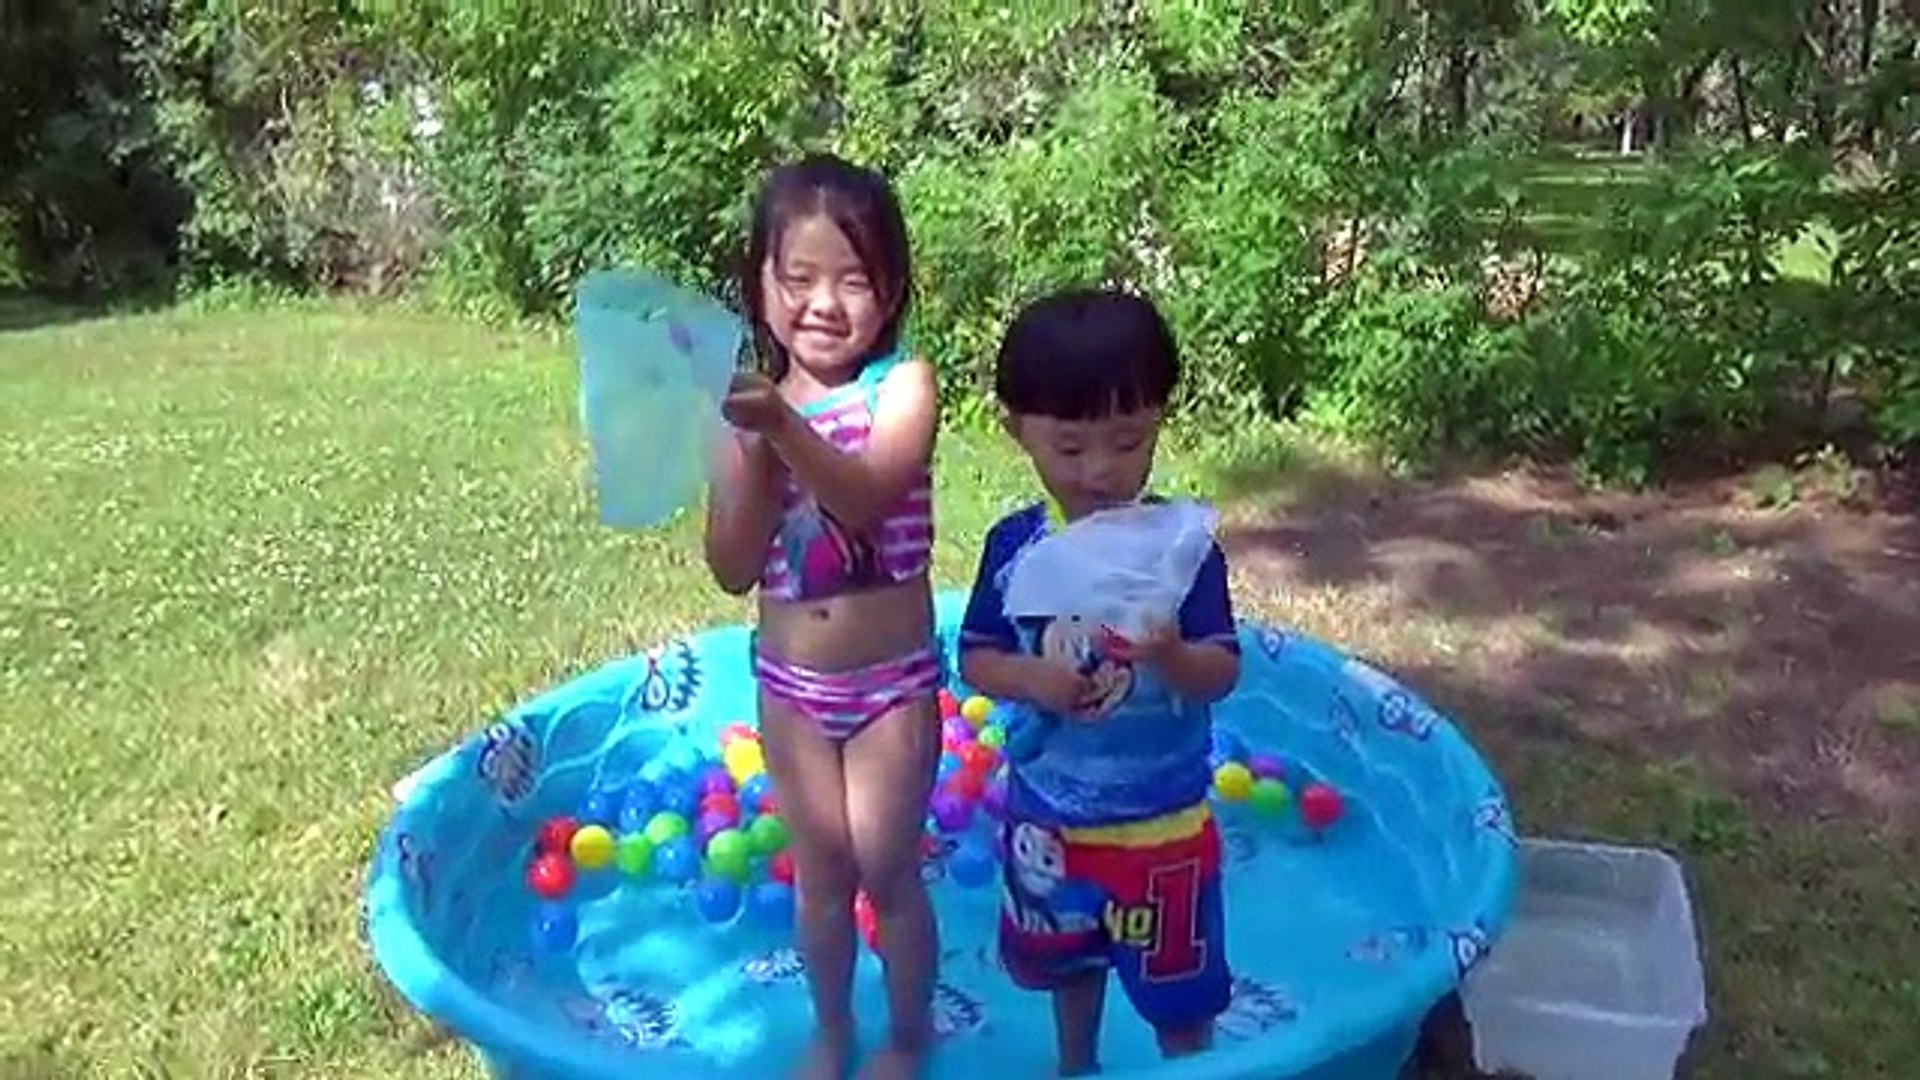 Surprise Toys in Bath Disney Toy Story Japanese Bath Balls Finding Dory Nemo Water Toys fo